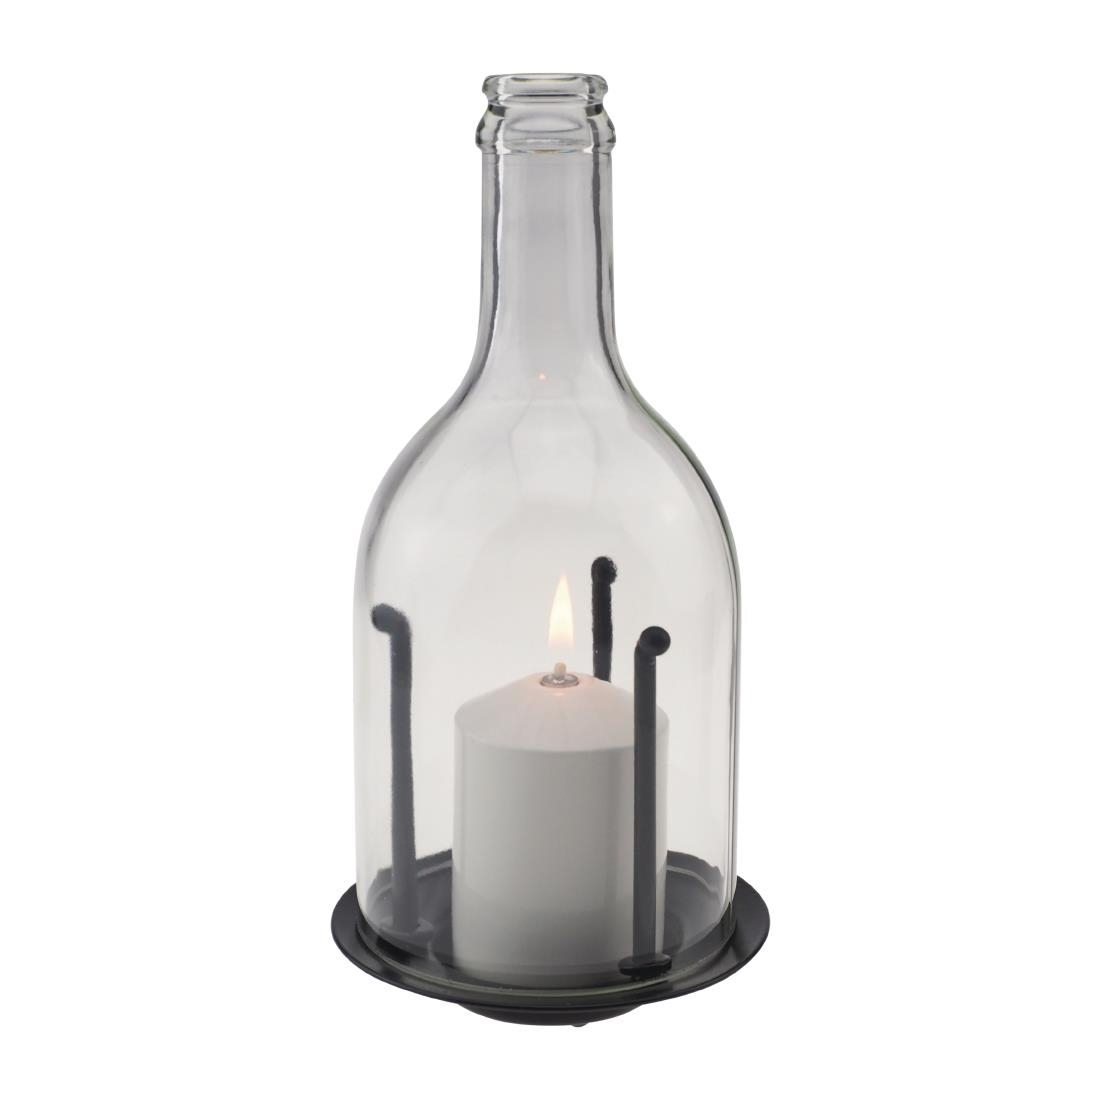 Candola Ino Glass Miracle Lamp Clear